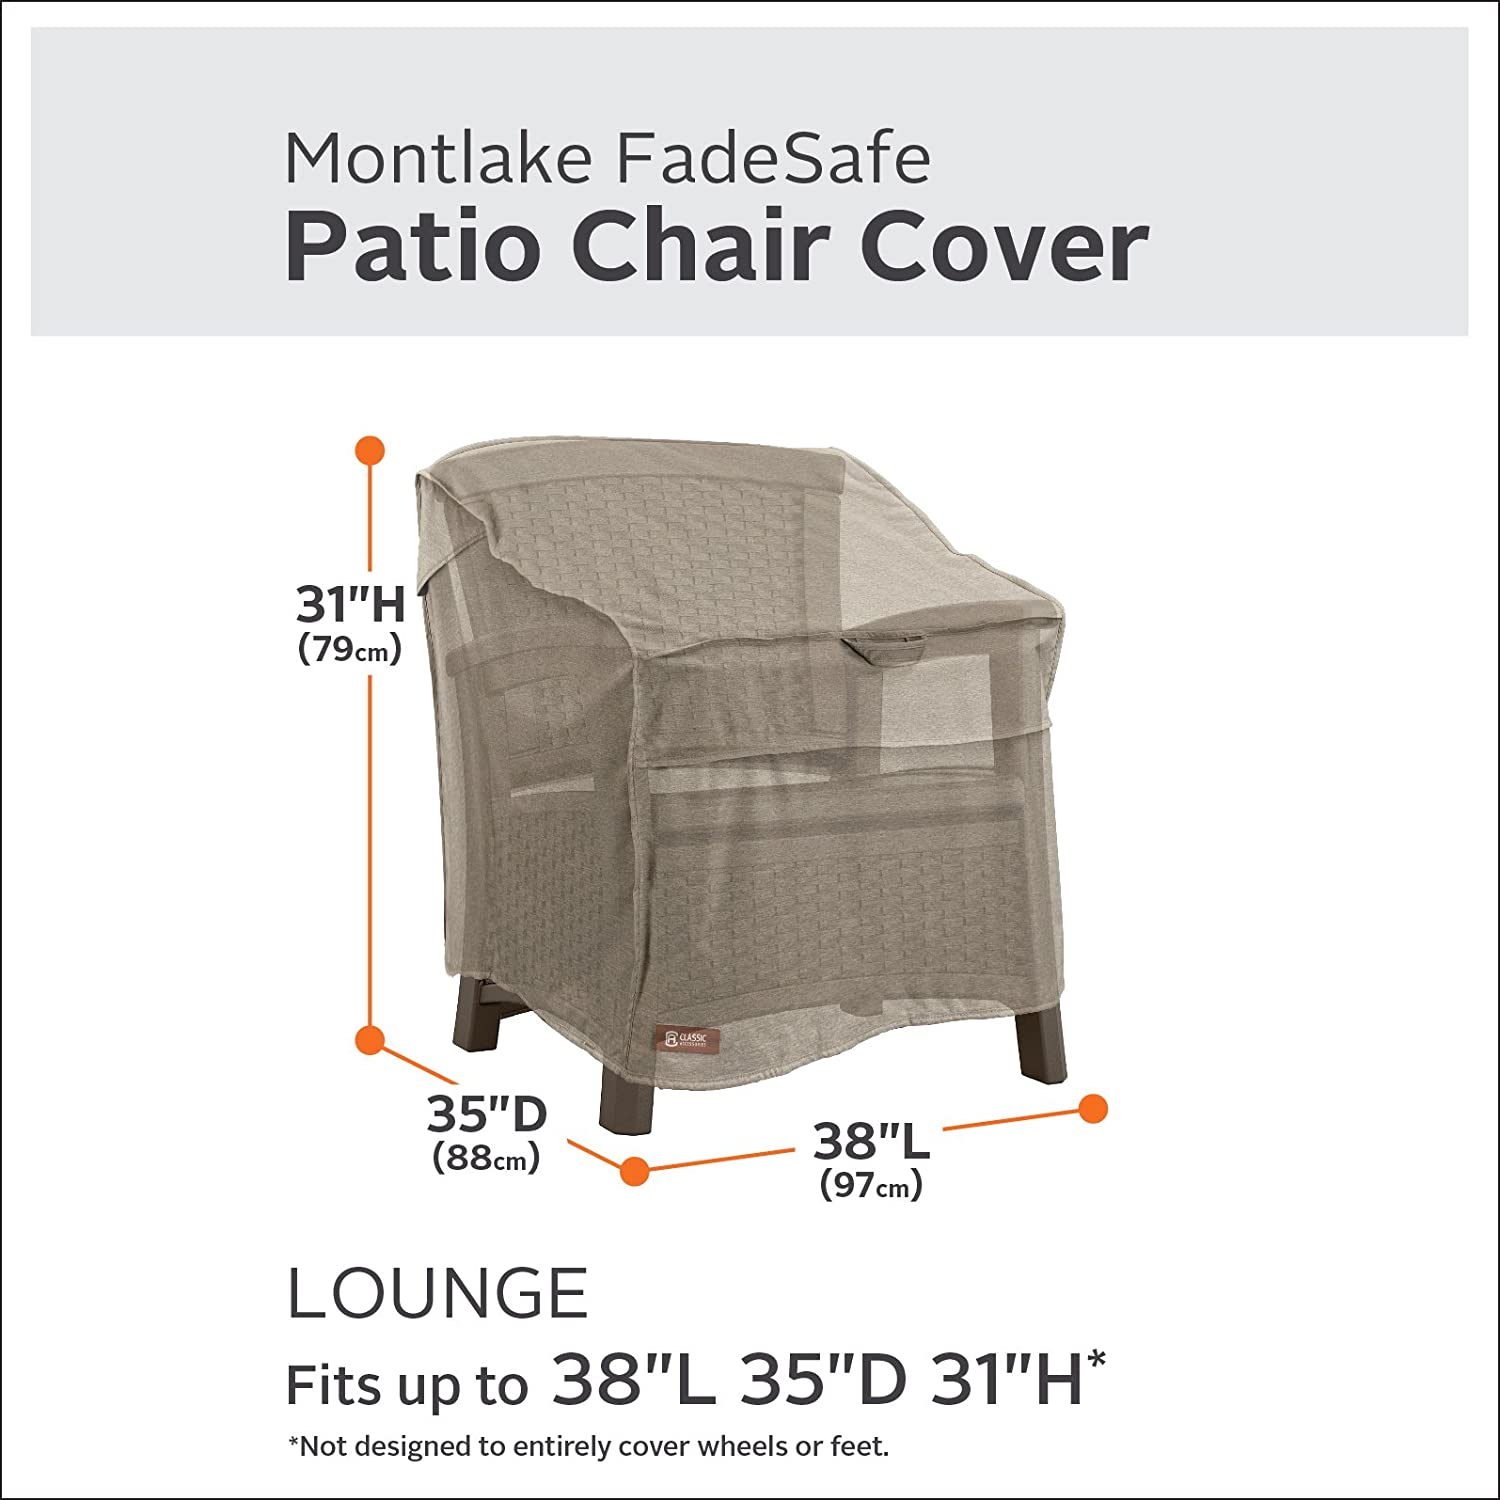 Classic Accessories Montlake FadeSafe Heavy Duty Patio Lounge Chair Cover, Heather Grey, Large